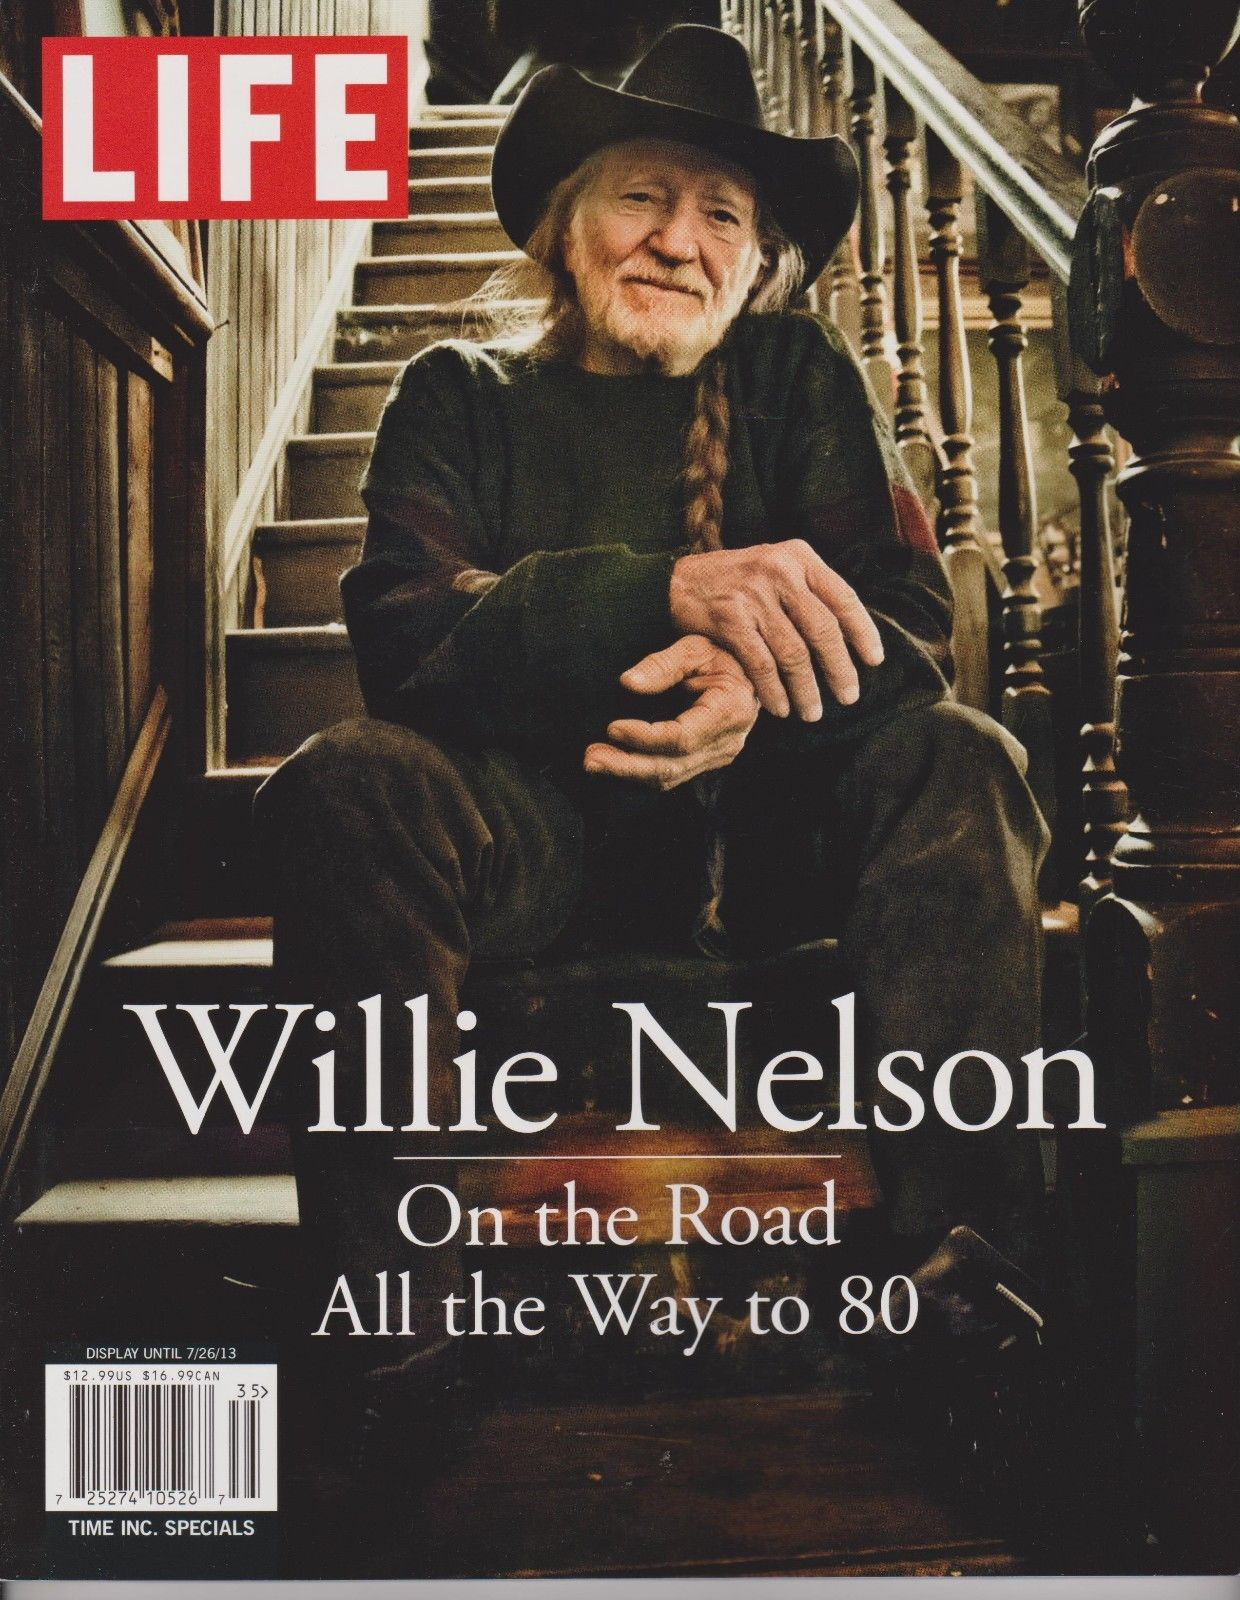 1505_001TimeLIFE Icons WillieNelson-AnnaWebber-photo.jpg